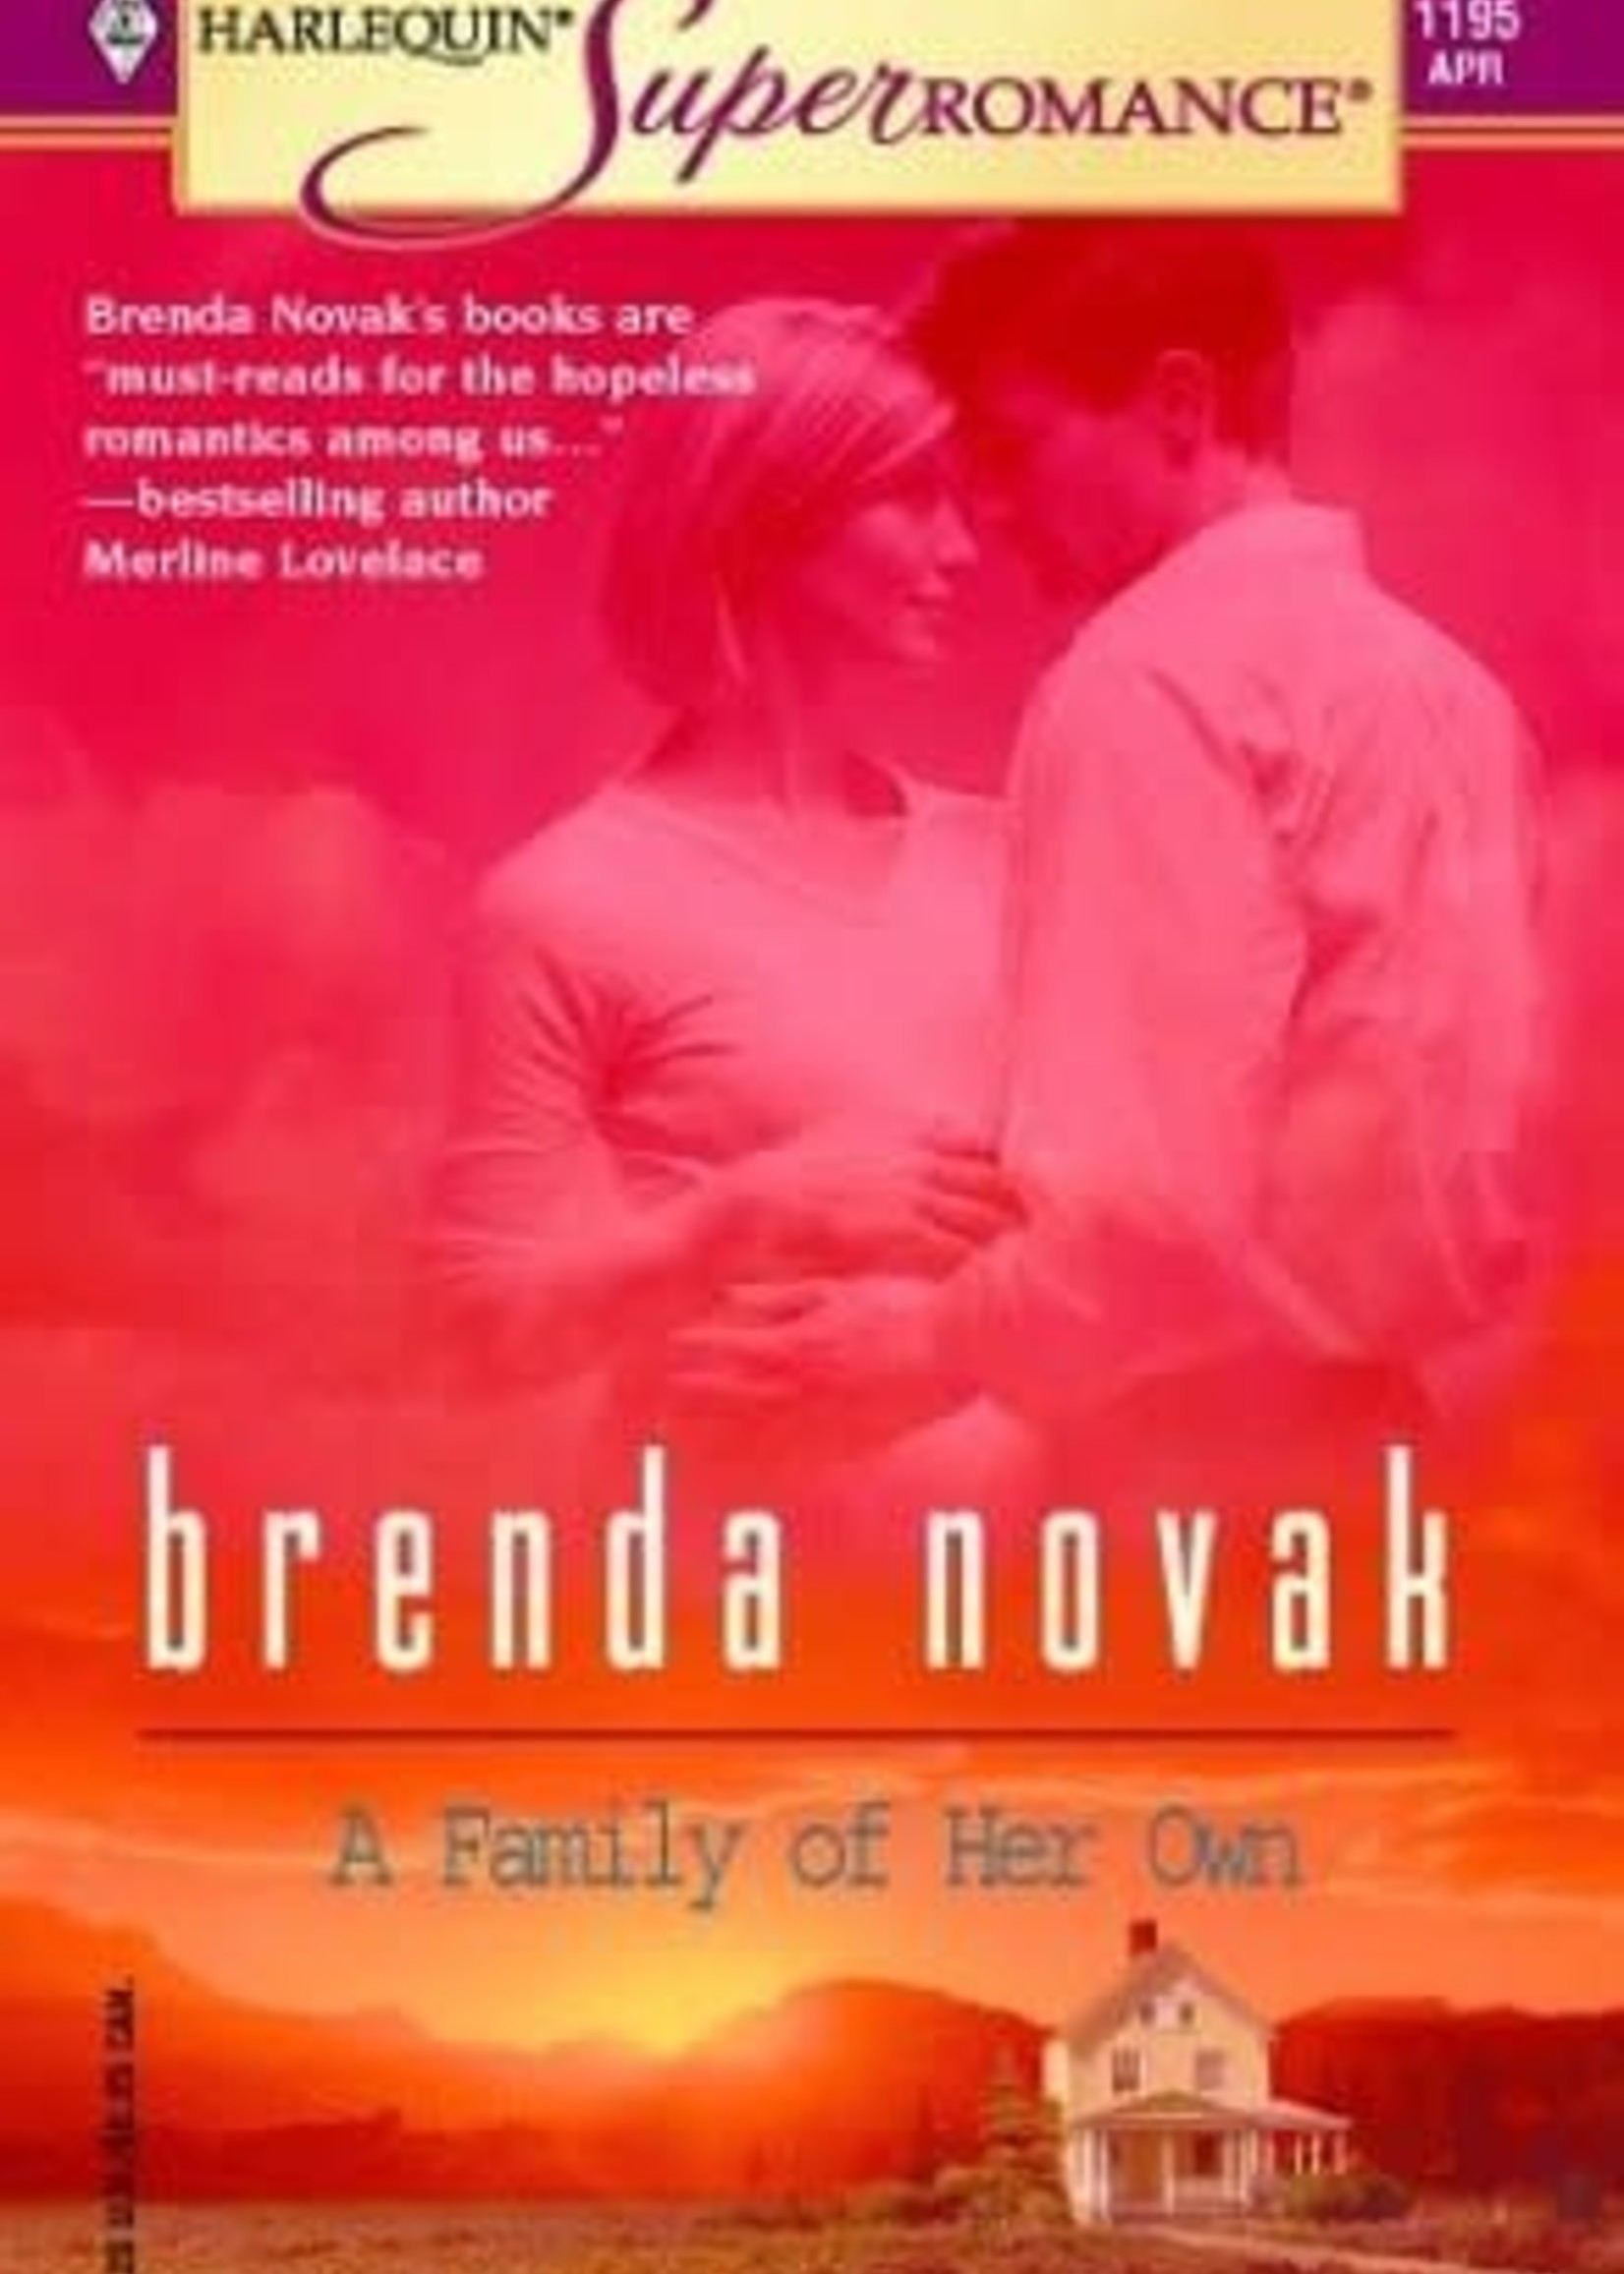 USED - A Family of Her Own by Brenda Novak